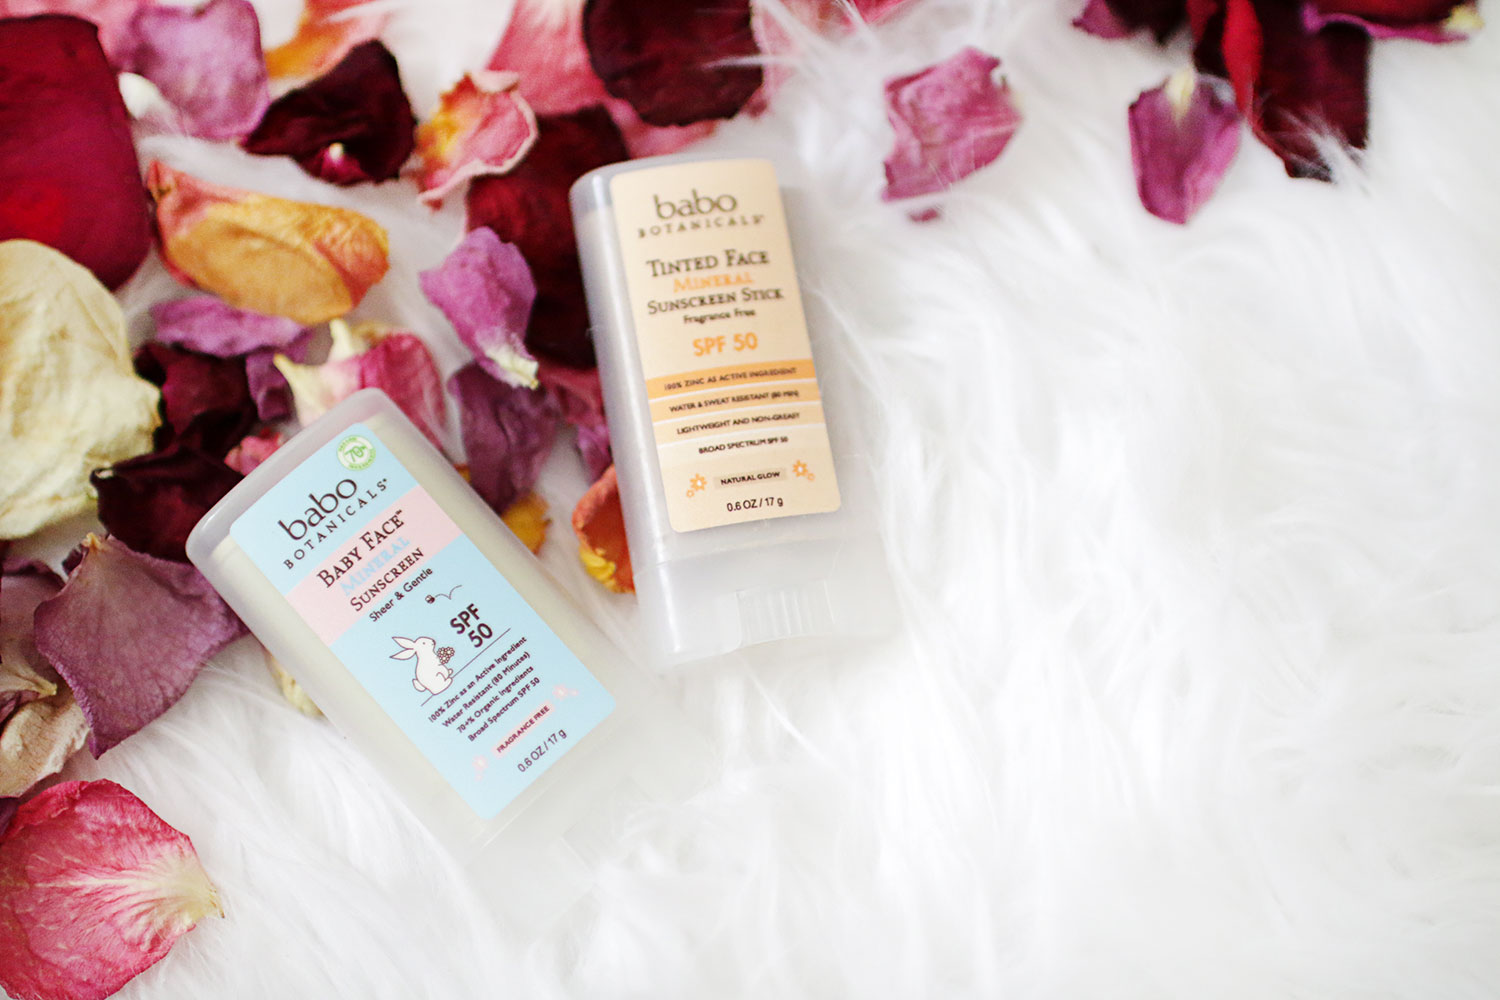 BaboBotanicals Sunscreen